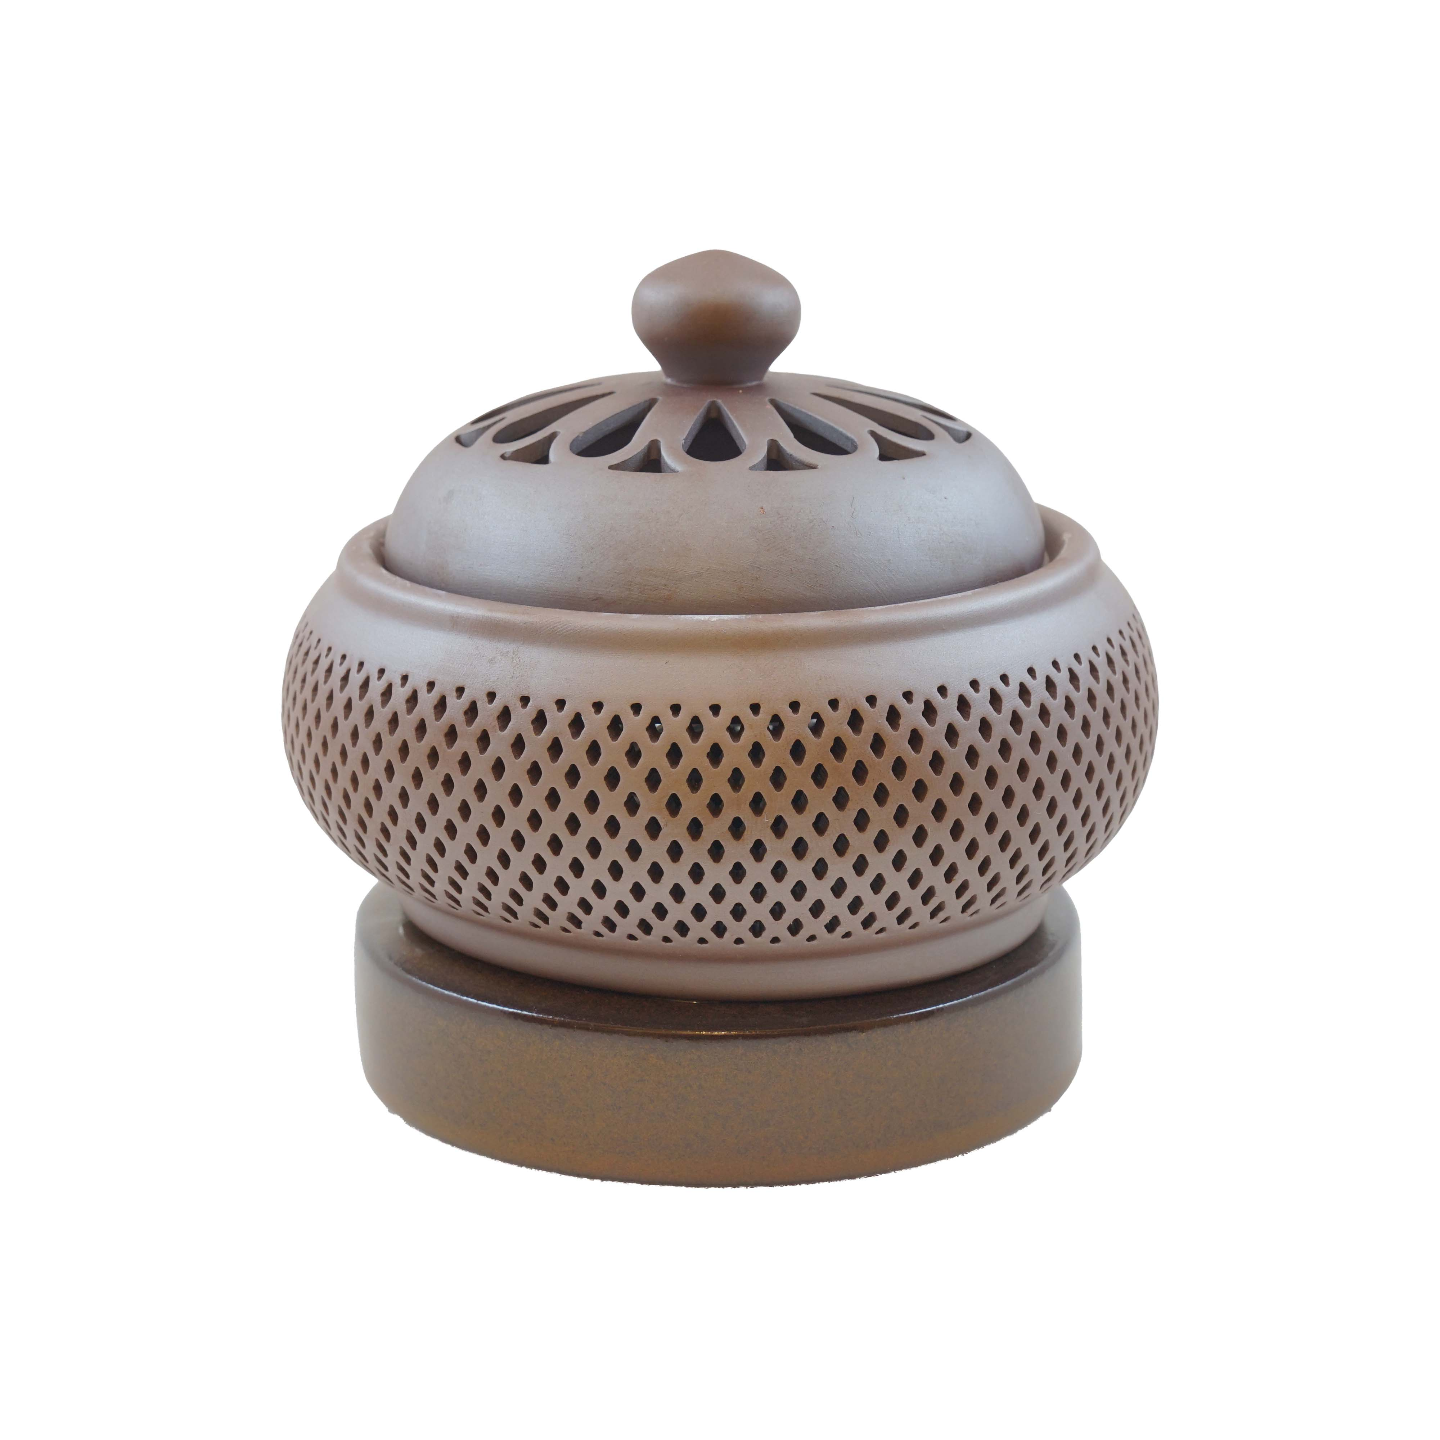 Electric Ceramic Incense Burner 调温定时电熏炉